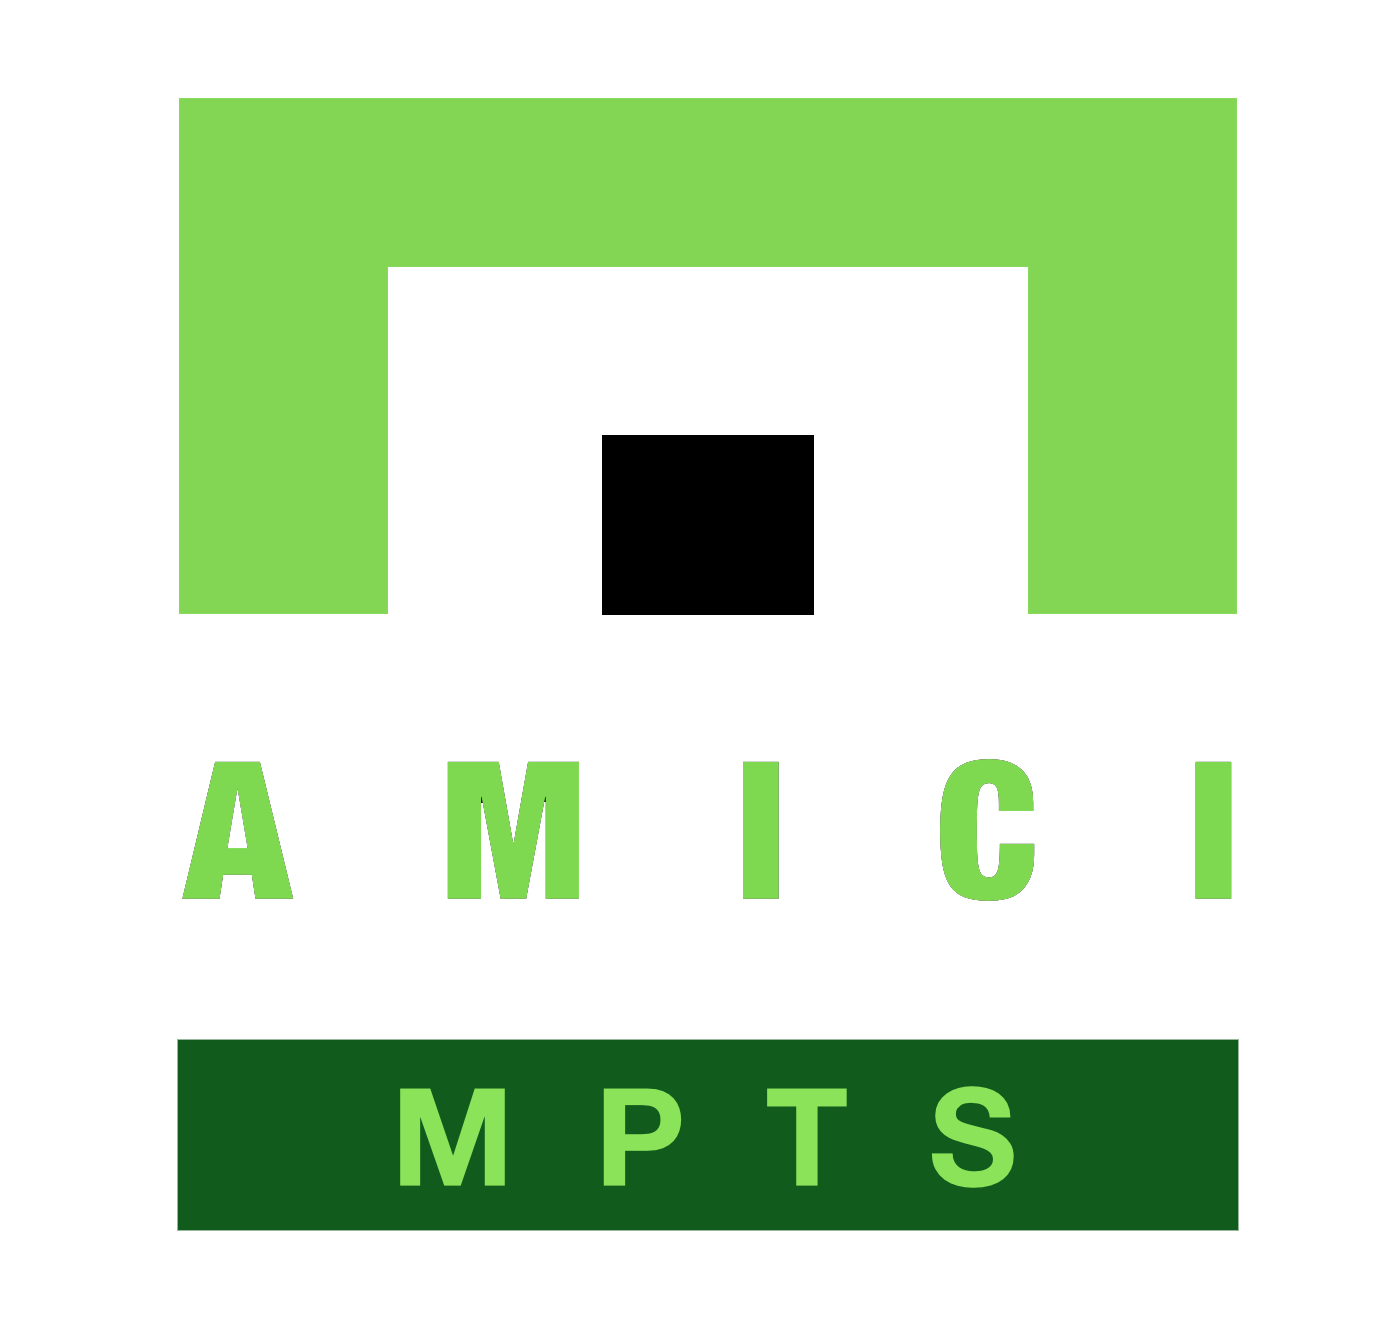 Amici MPTS Logo - Black DOT - Tranparent Background